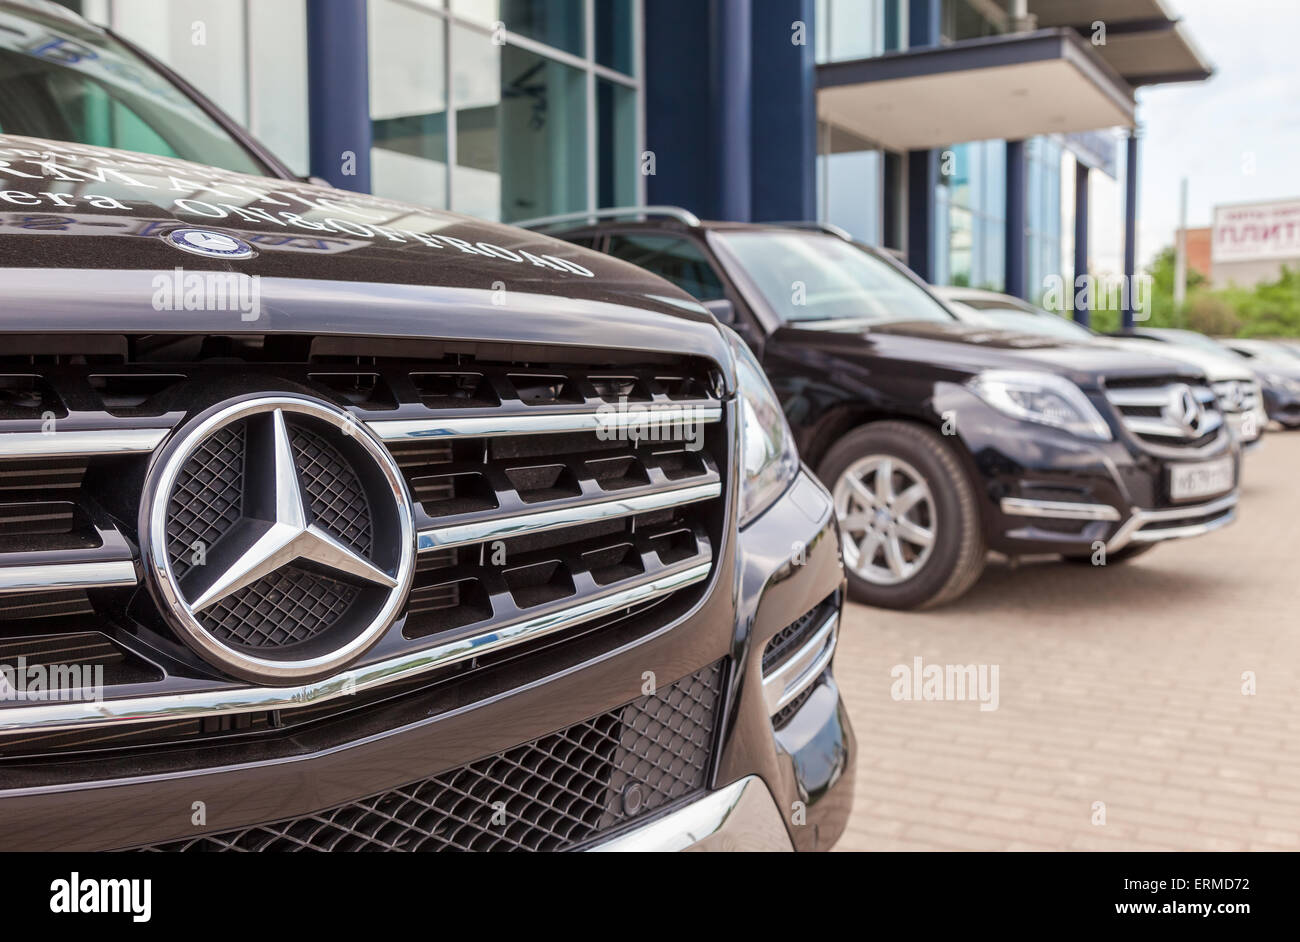 Grille of a mercedes benz car with the famous star stock for Star motor cars mercedes